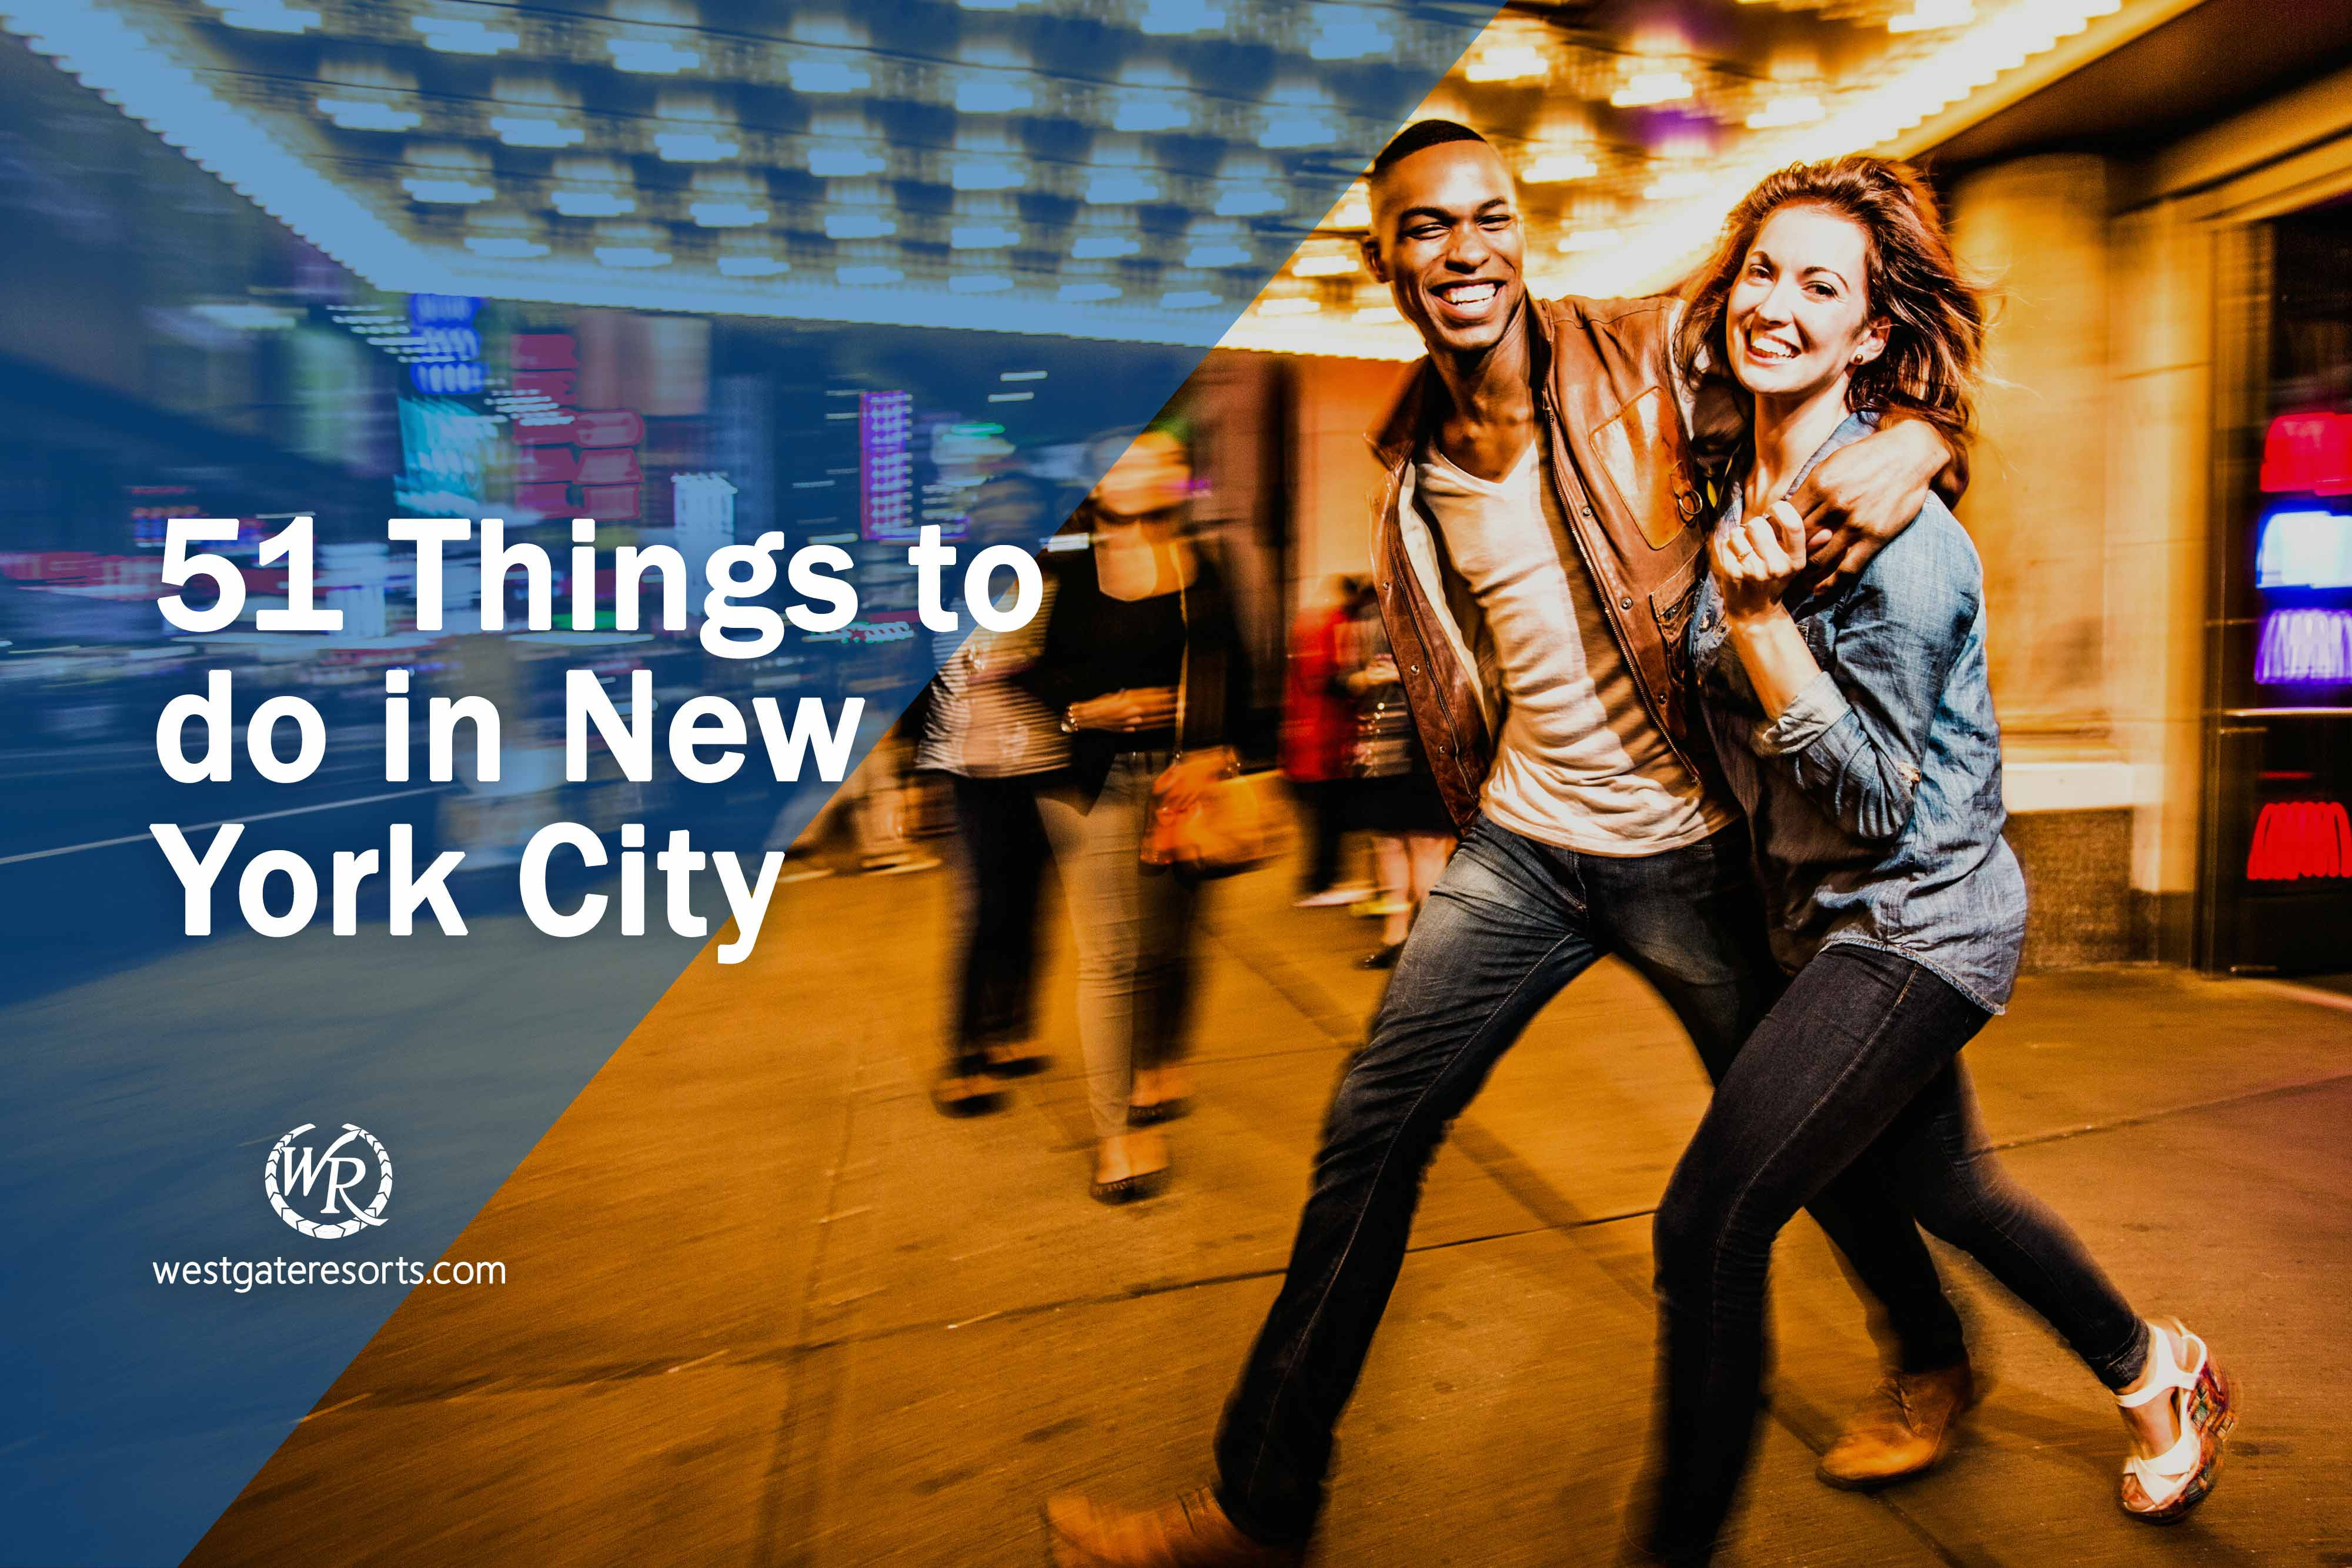 51 Things to do in NYC